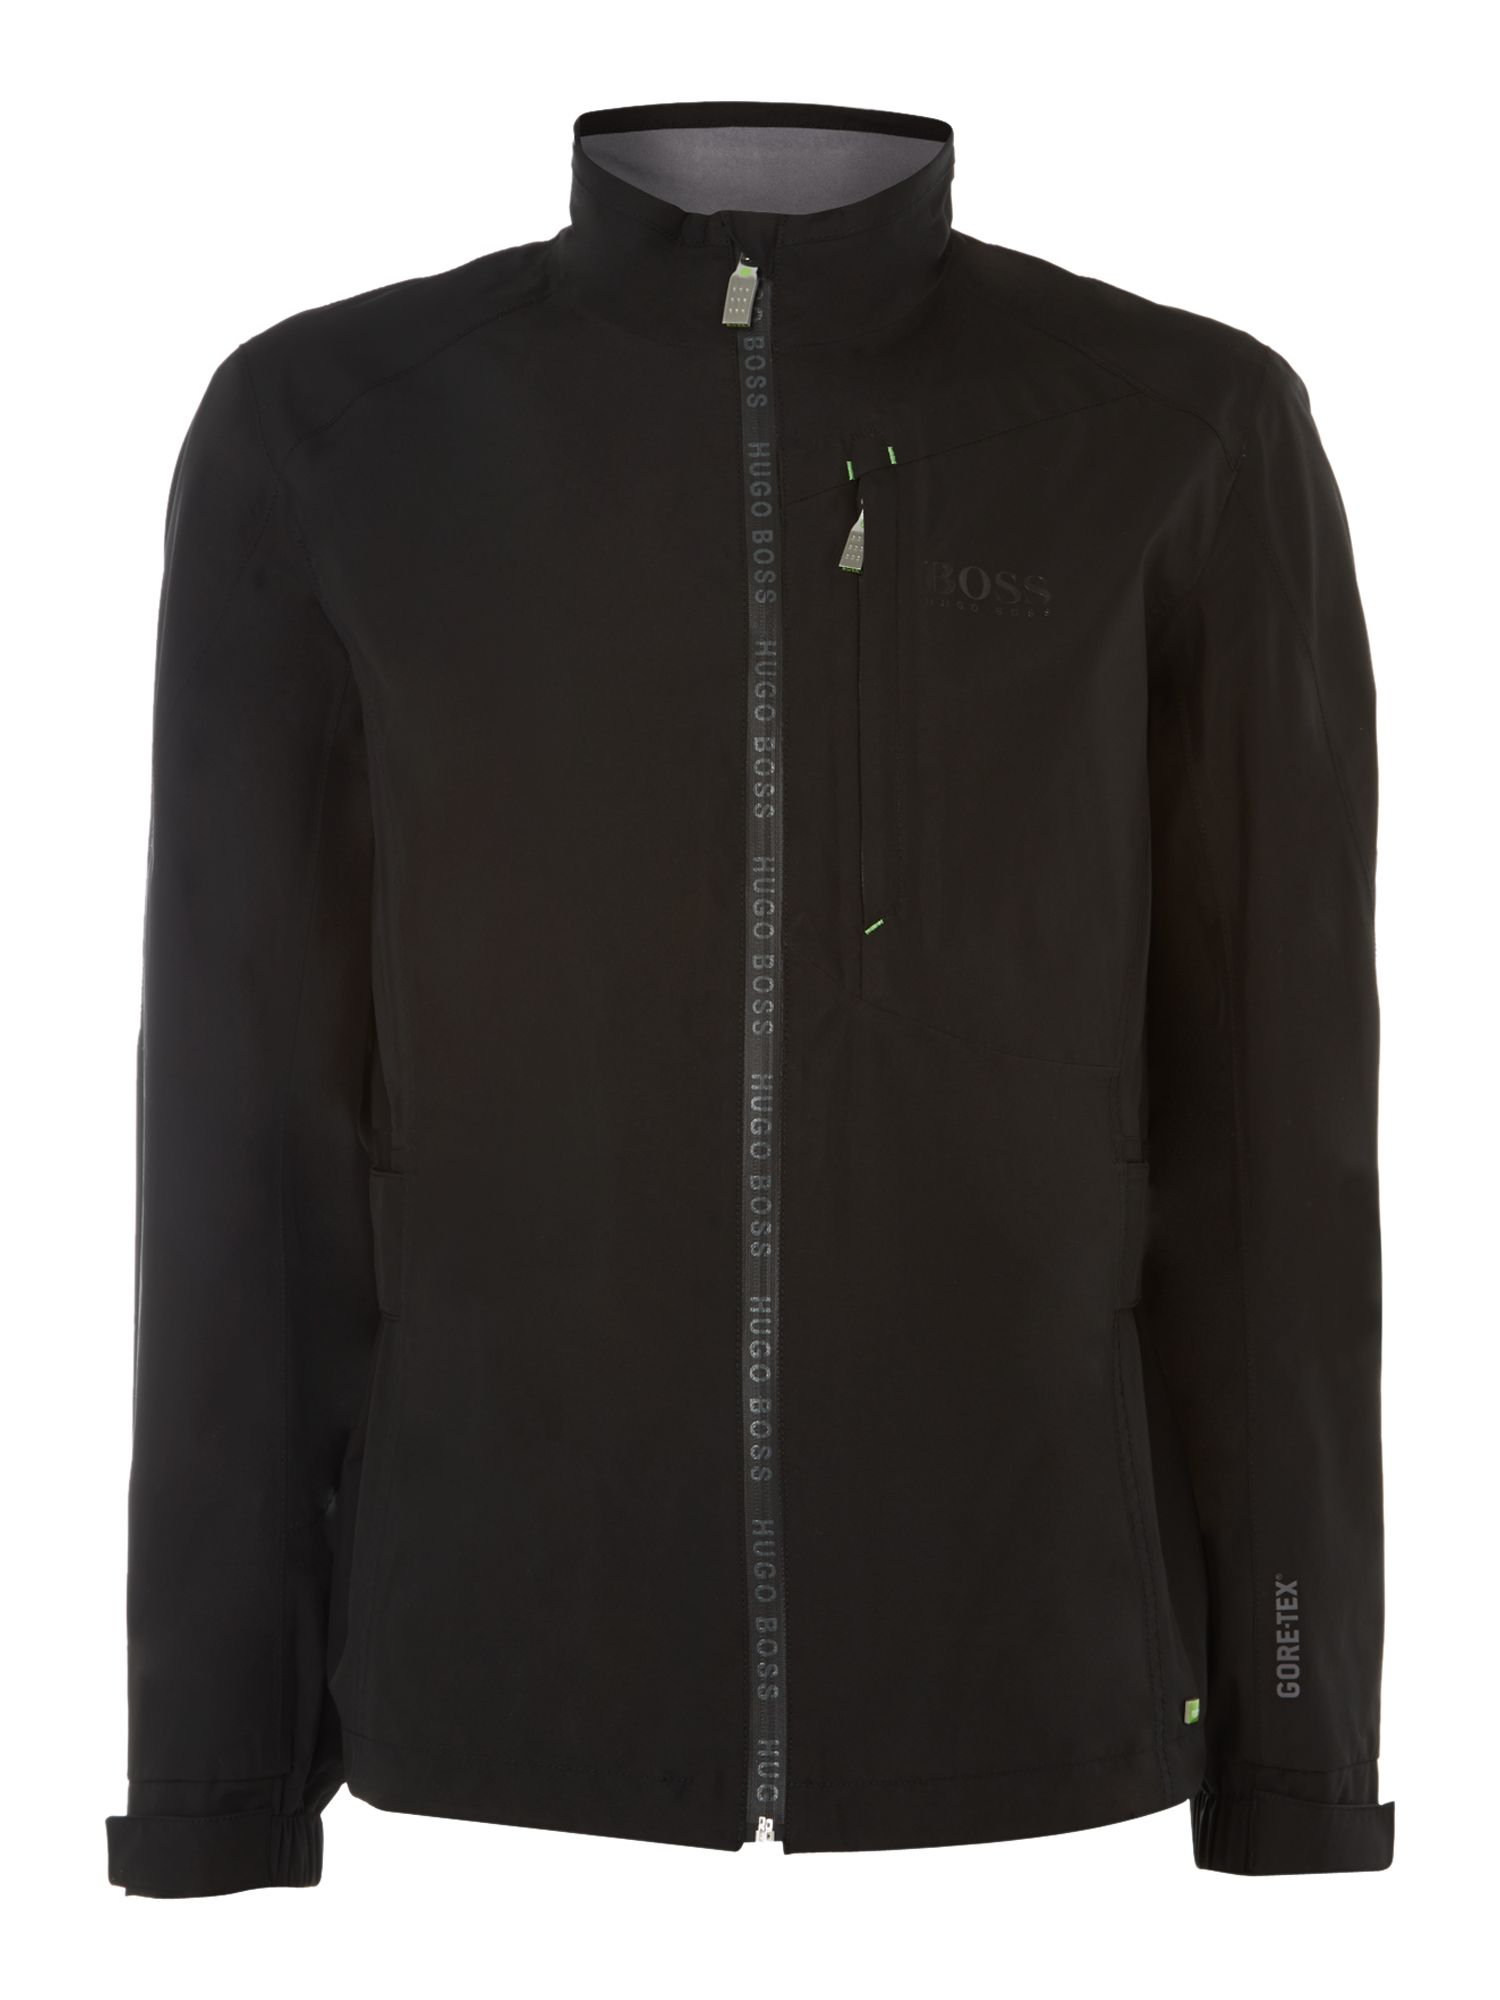 Men&39s Hugo Boss Goretex jacket Black